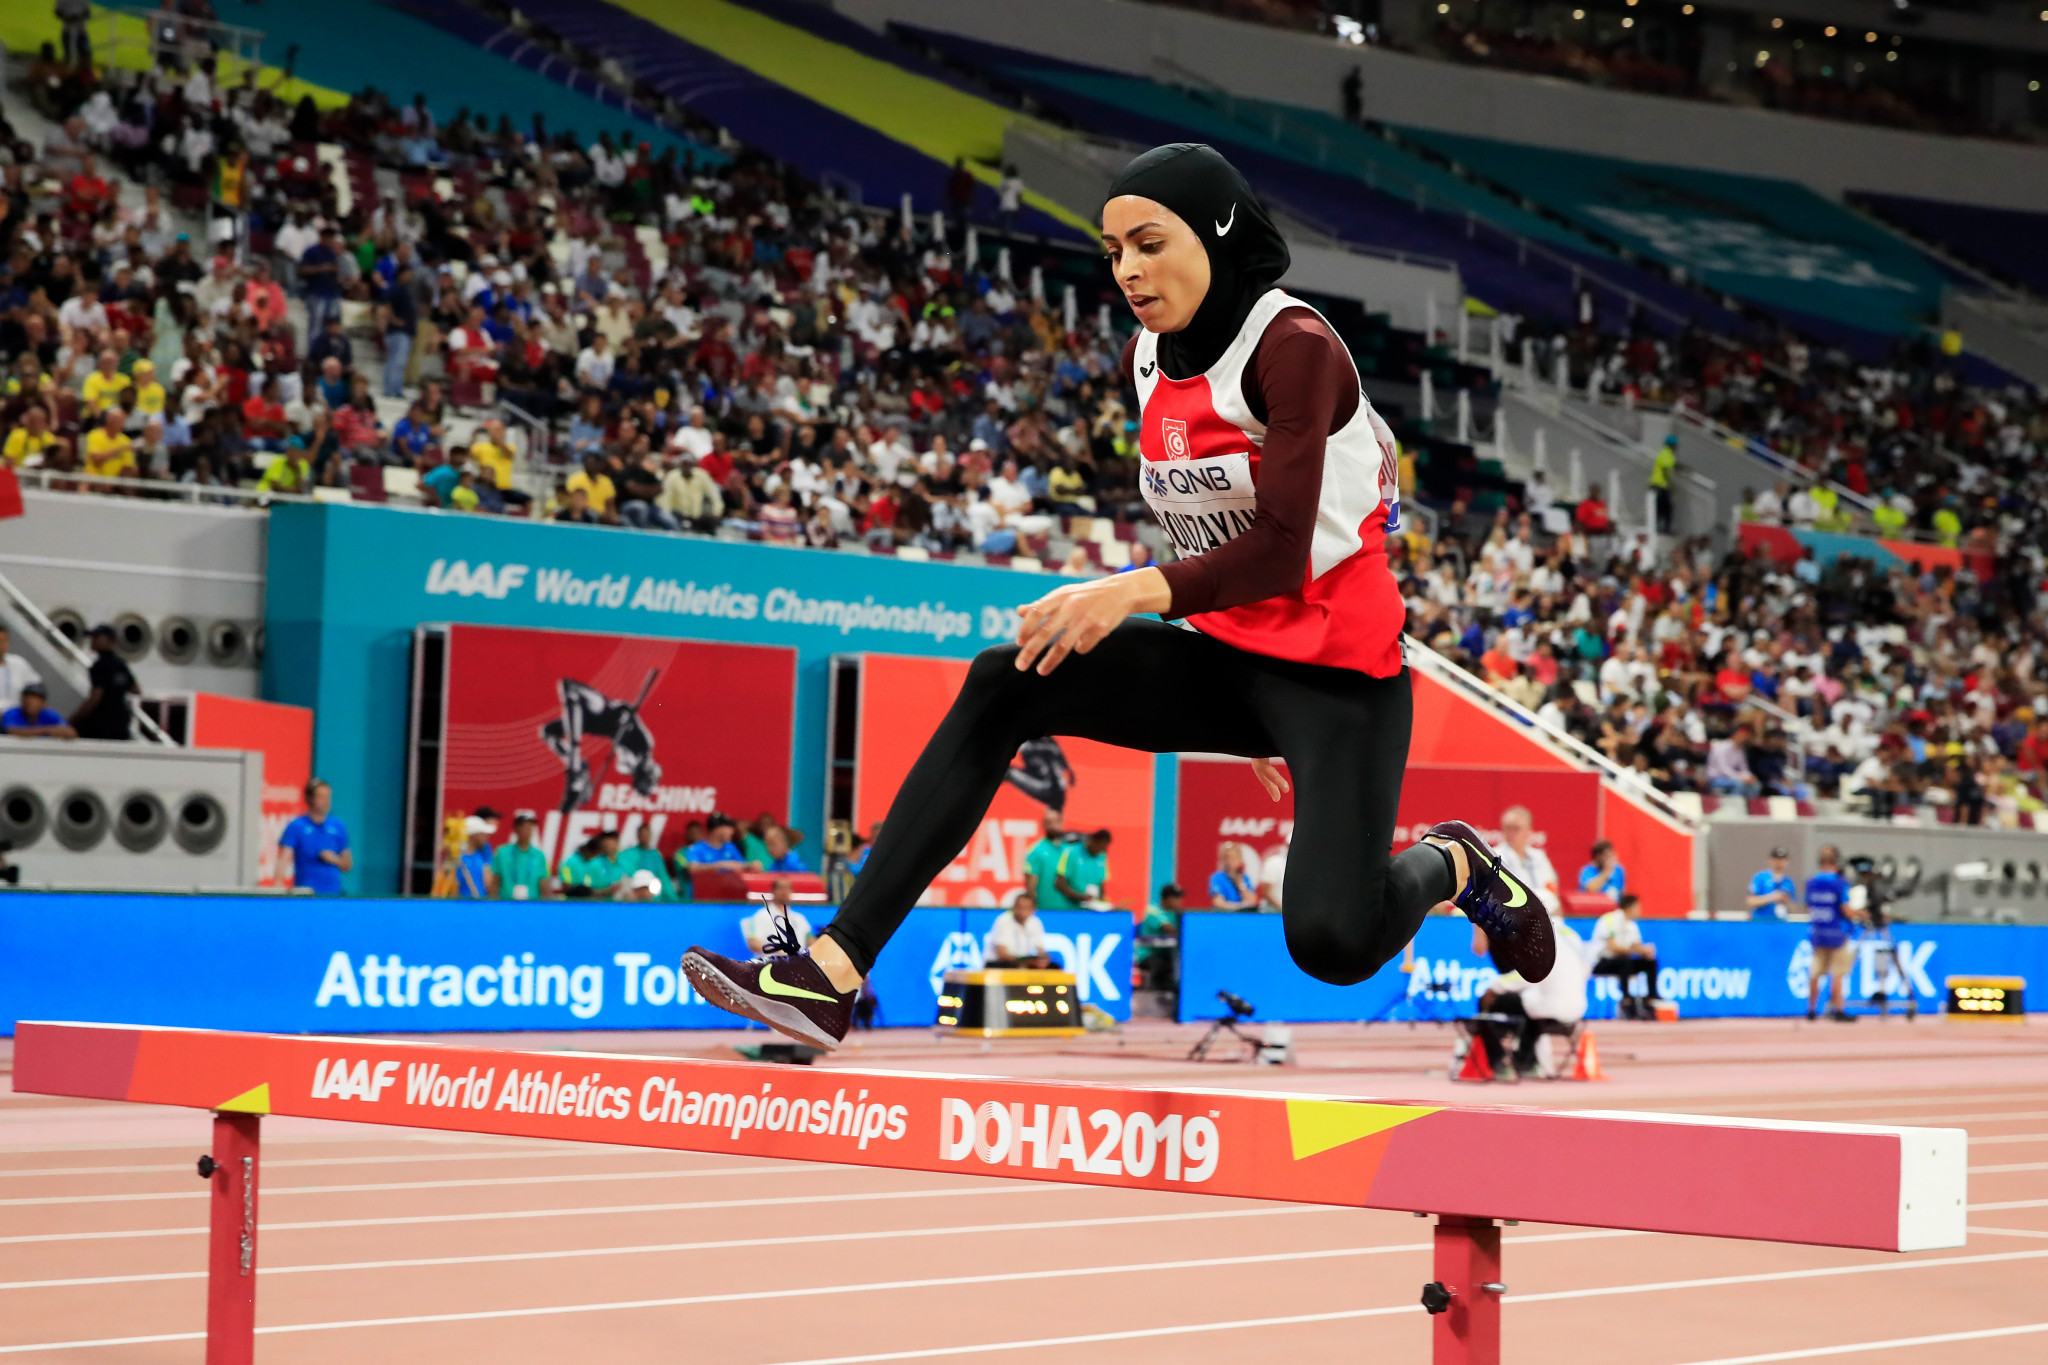 Tunisia's Marwa Bouzayani was among competitors in the women's heats of the 3,000m steeplechase ©Getty Images